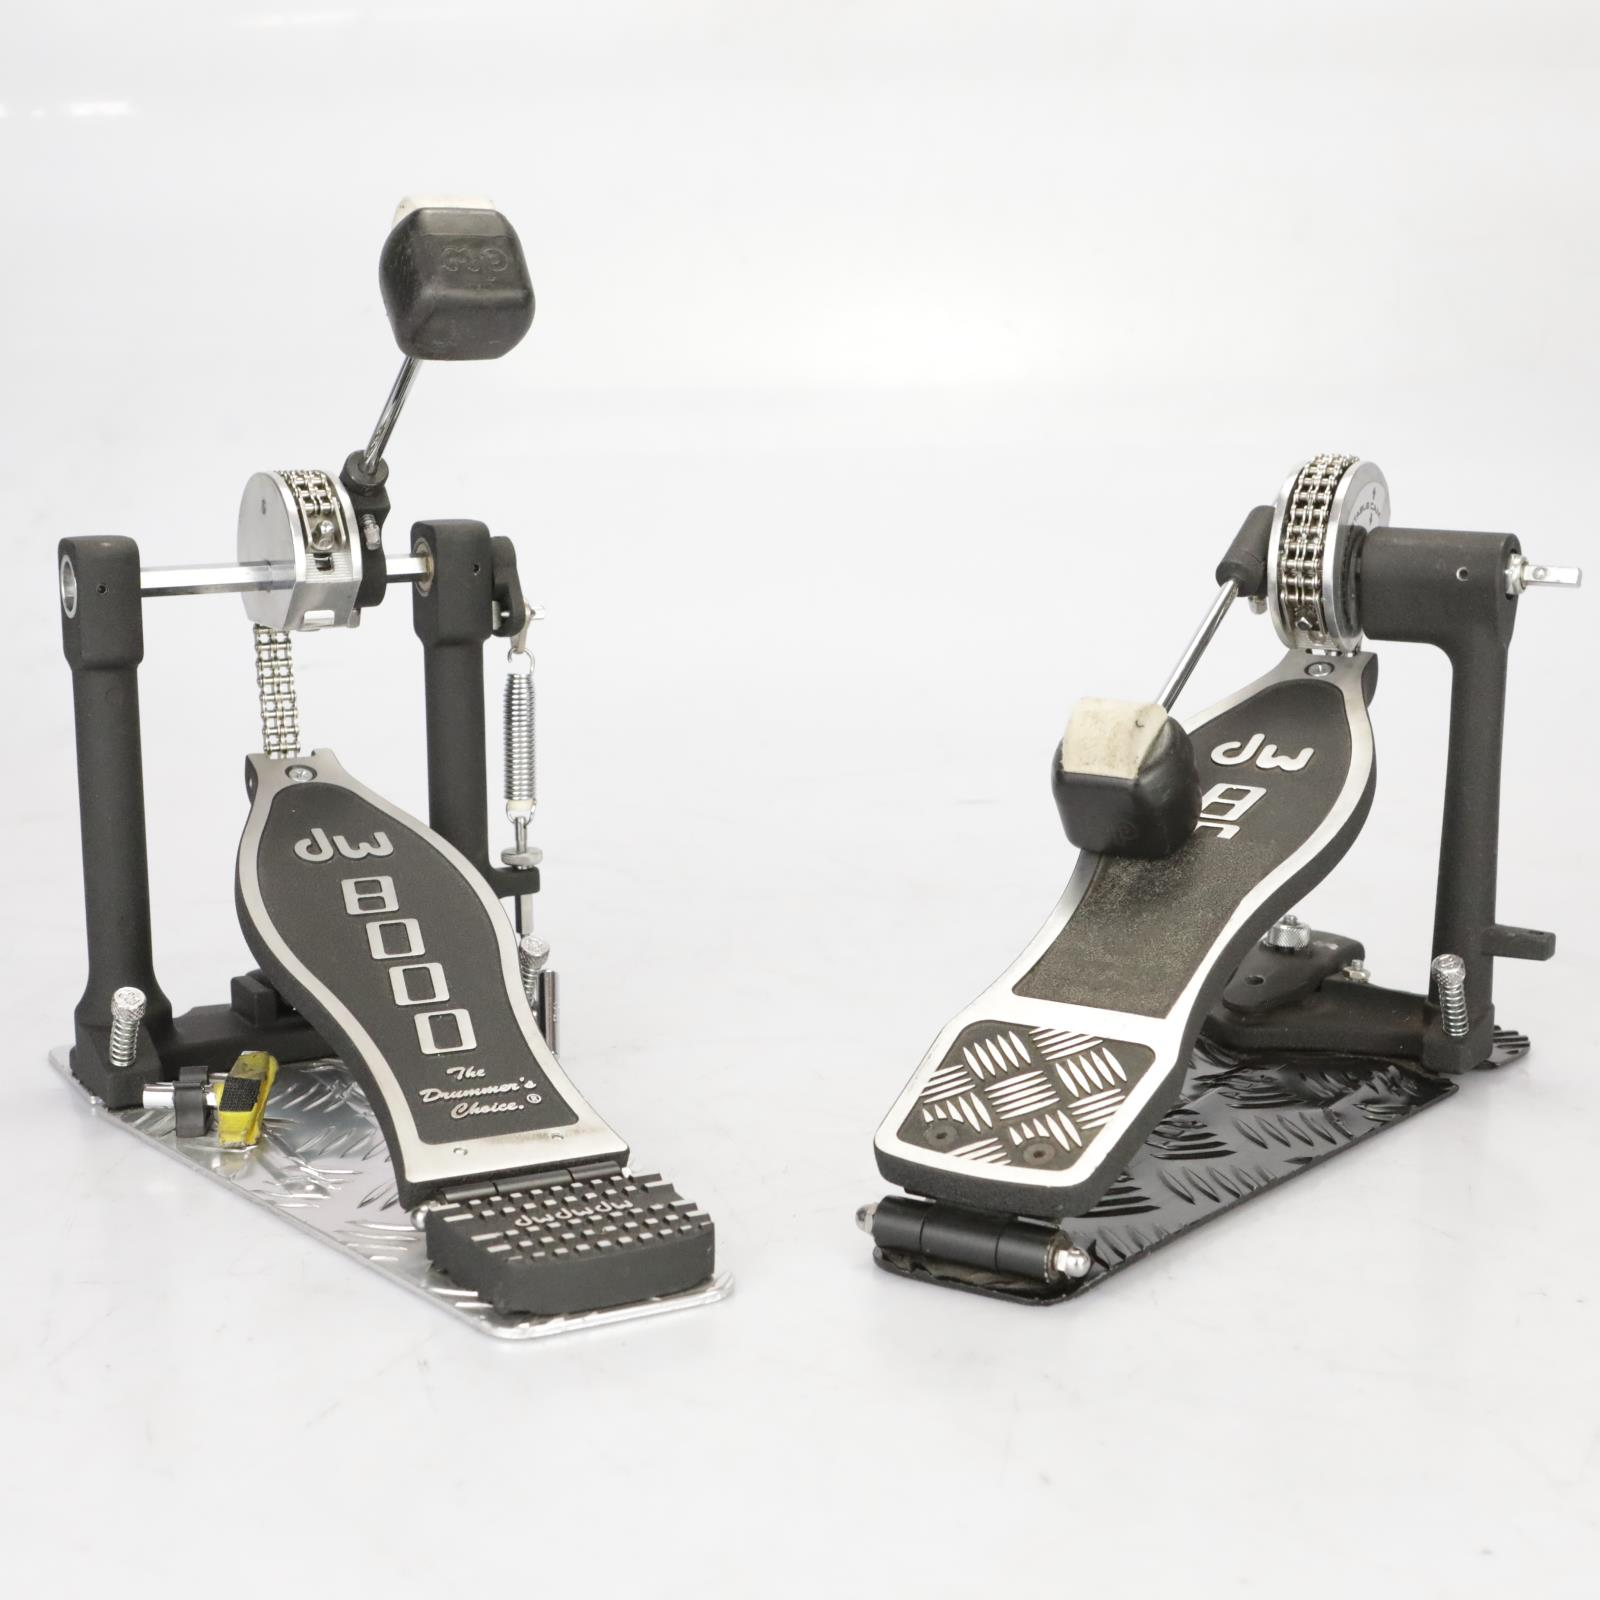 DW 8000 Kick Drum Double Pedals w/ Case owned by Roy Mayorga #37635